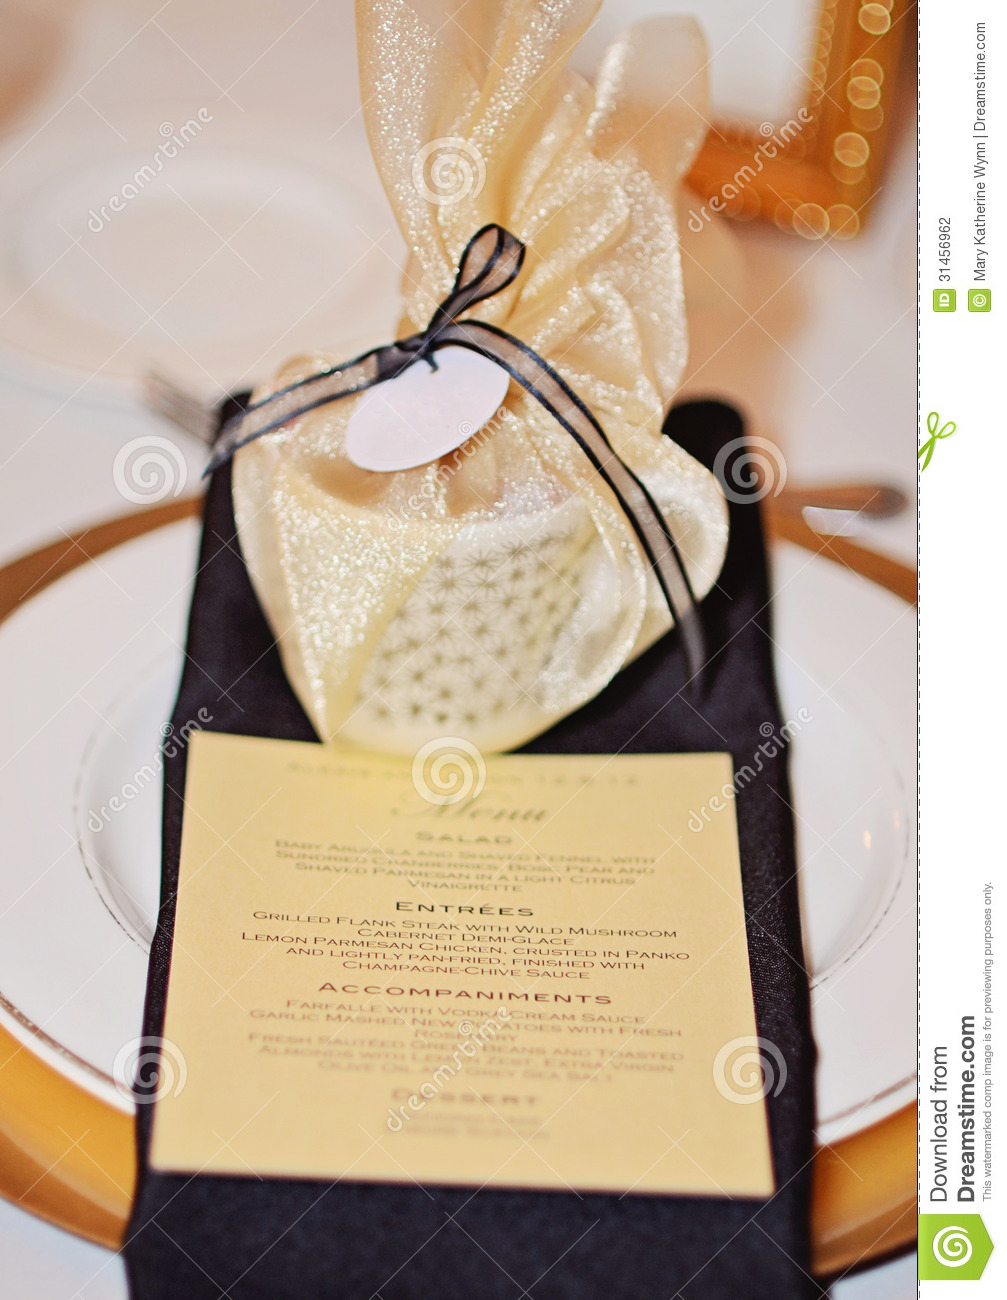 candlelit gold and black evening formal wedding reception table.: www.dreamstime.com/stock-photography-formal-table-setting-candlelit...